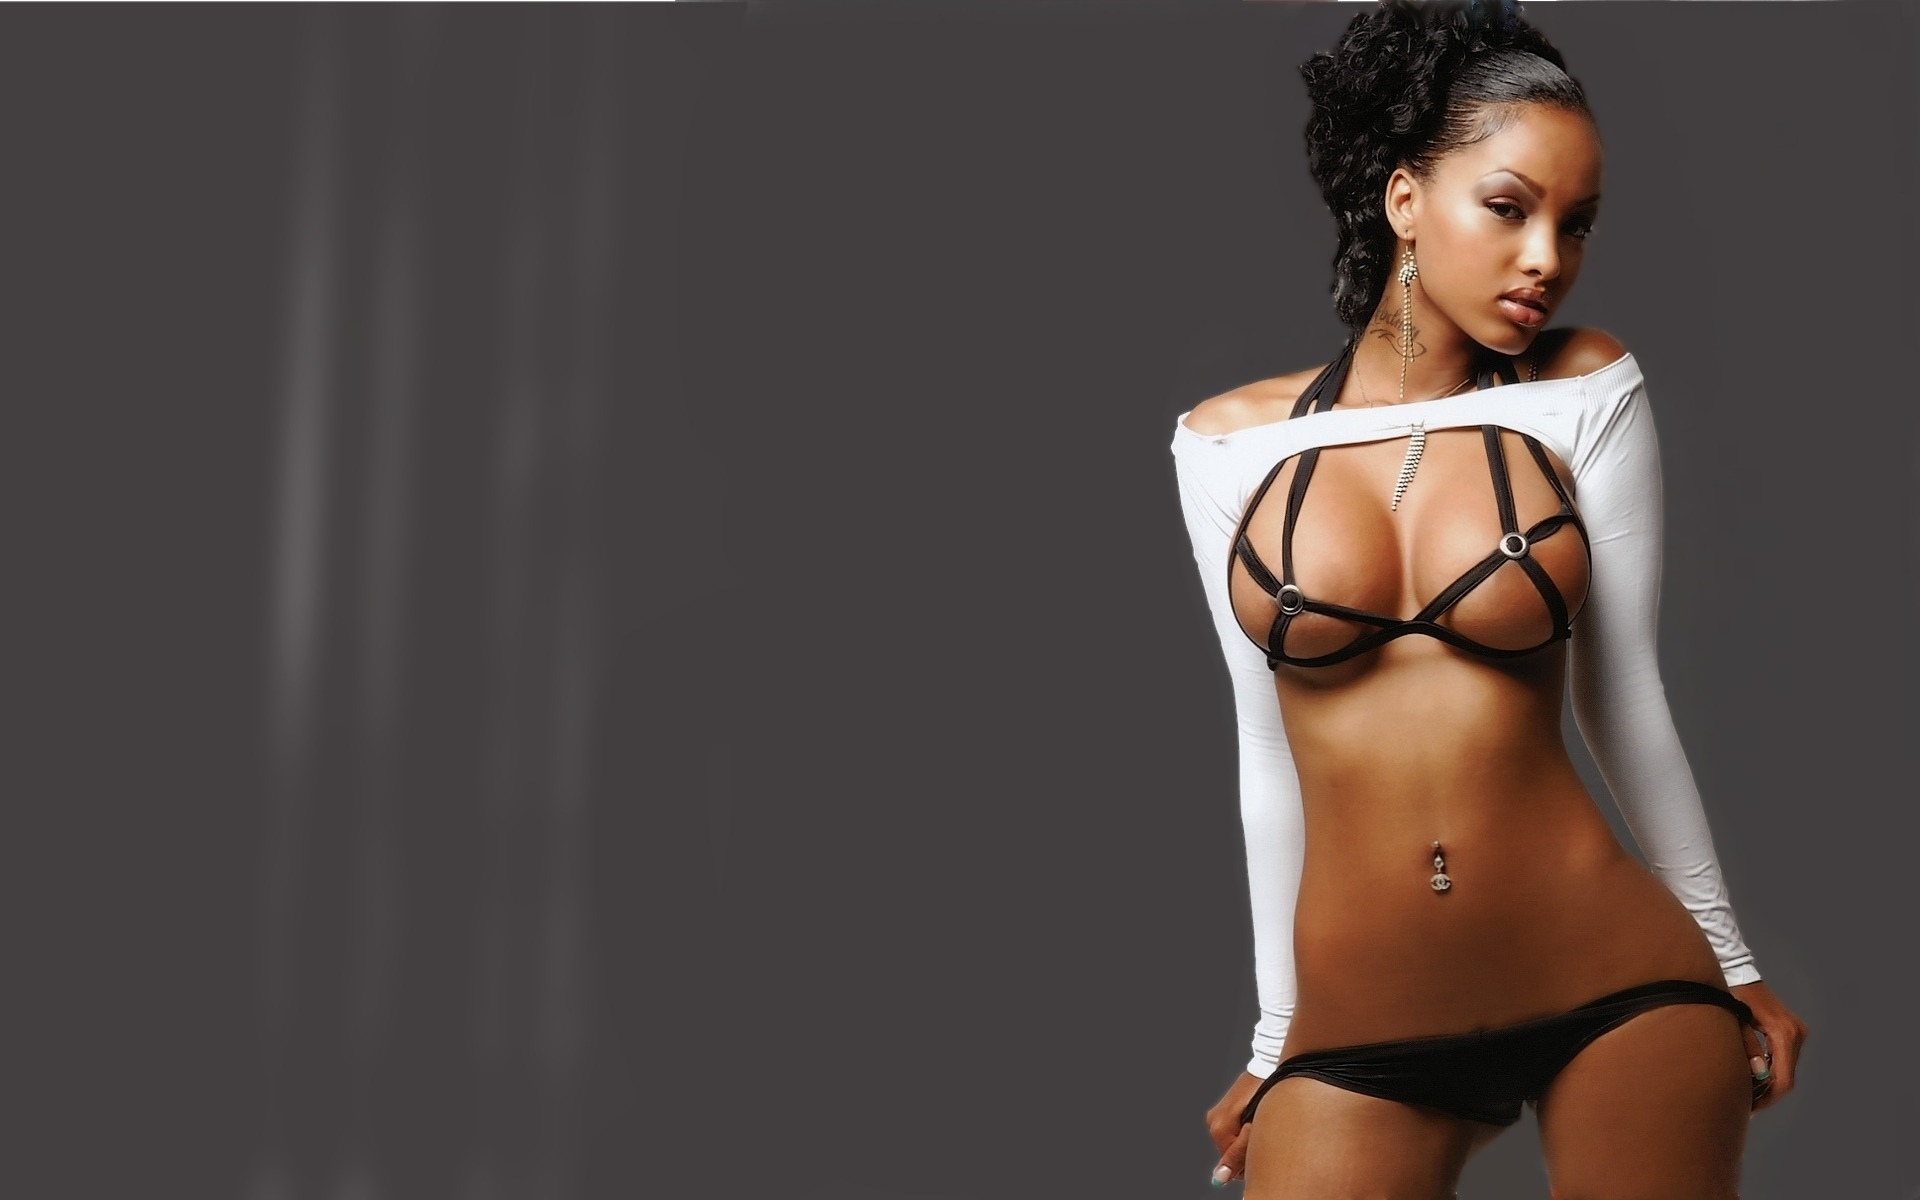 Sexy black women wallpaper hentia photos